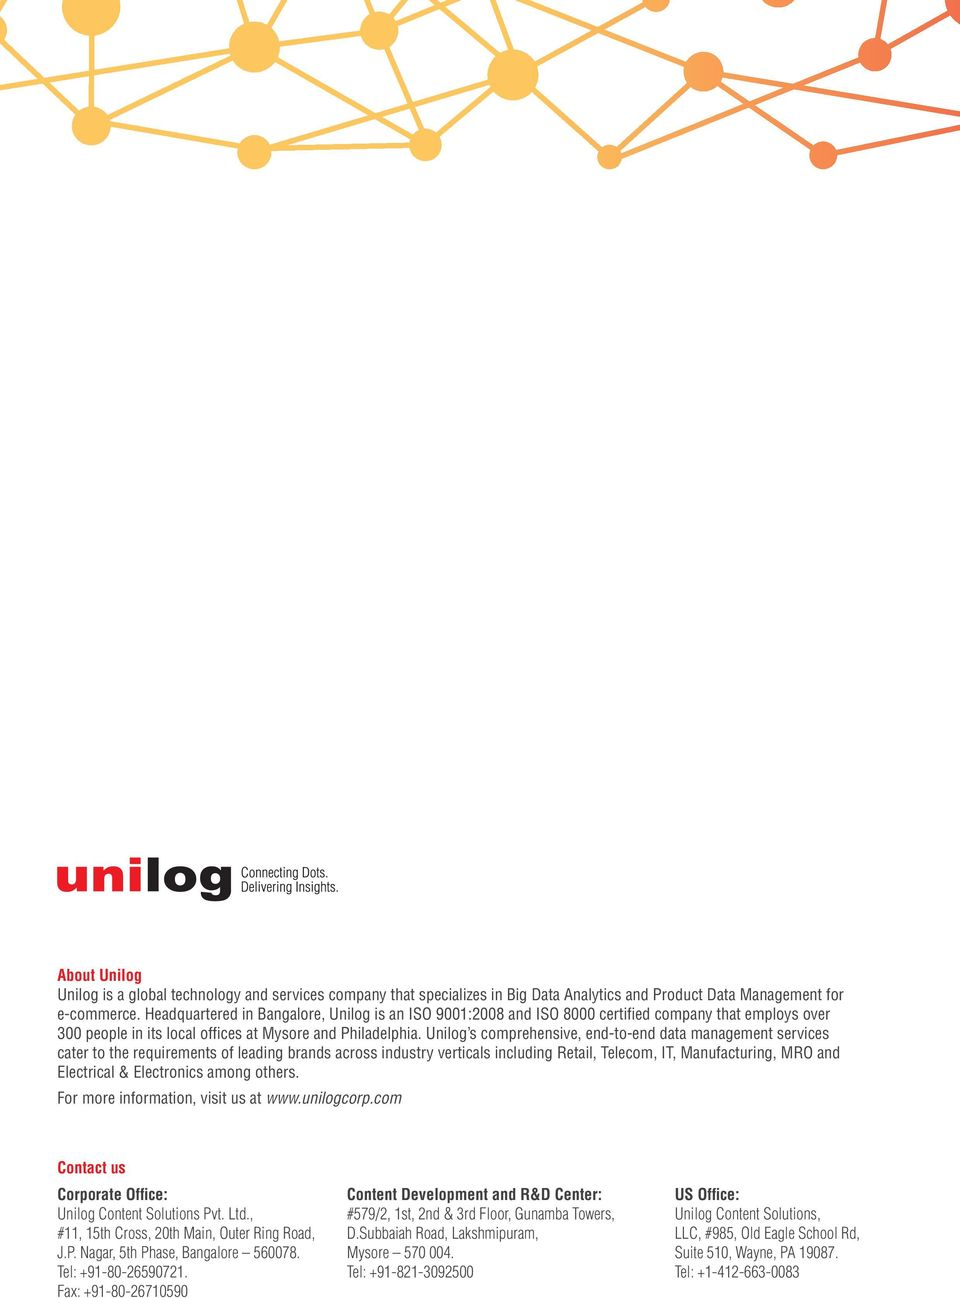 Unilog s comprehensive, end-to-end data management services cater to the requirements of leading brands across industry verticals including Retail, Telecom, IT, Manufacturing, MRO and Electrical &